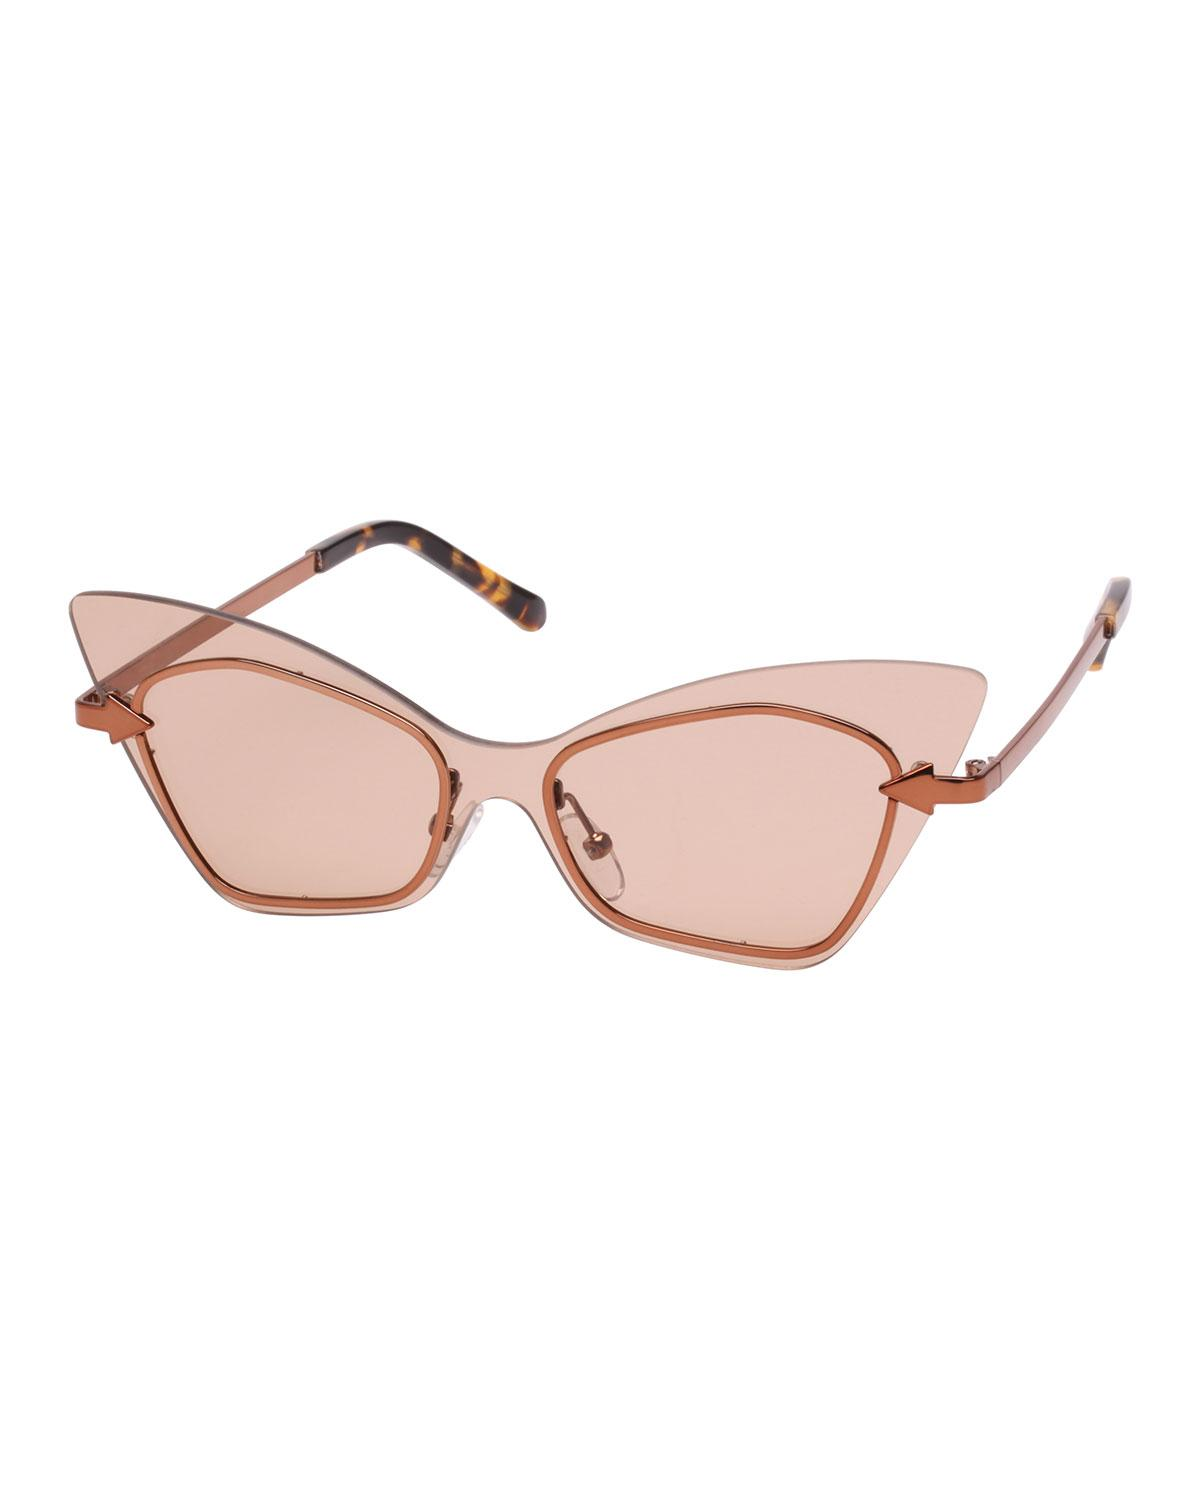 deab59d53cca Karen Walker Mrs. Brill Cat-Eye Semi-Rimless Sunglasses